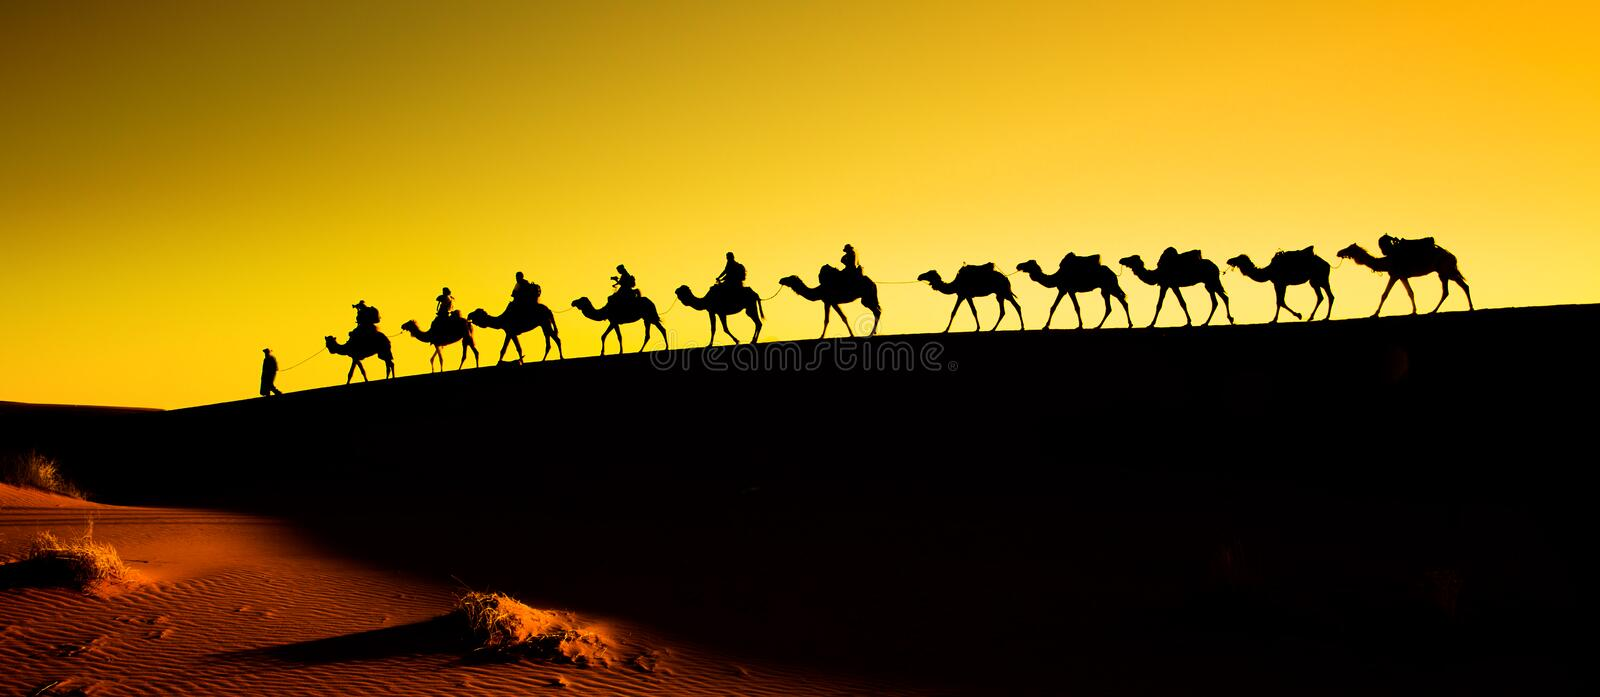 Silhouette of a camel caravan royalty free stock photography